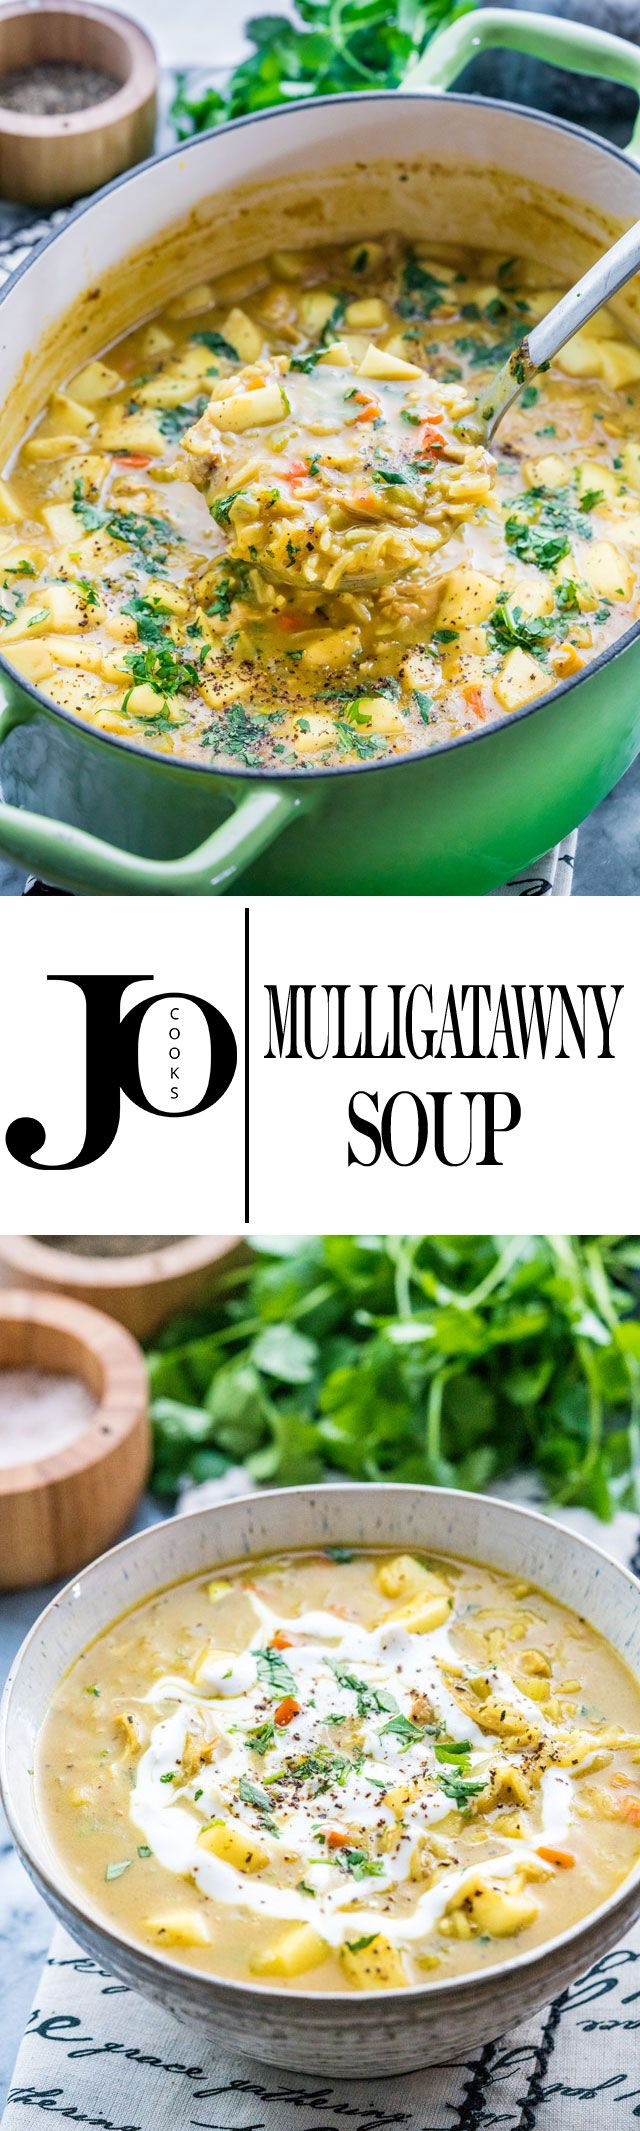 This Mulligatawny Soup is a traditional curry soup with origins in Indian cuisine and it's deeply satisfying, comforting and delicious. Mildly spicy, creamy, loaded with chicken and apples, simply incredible!